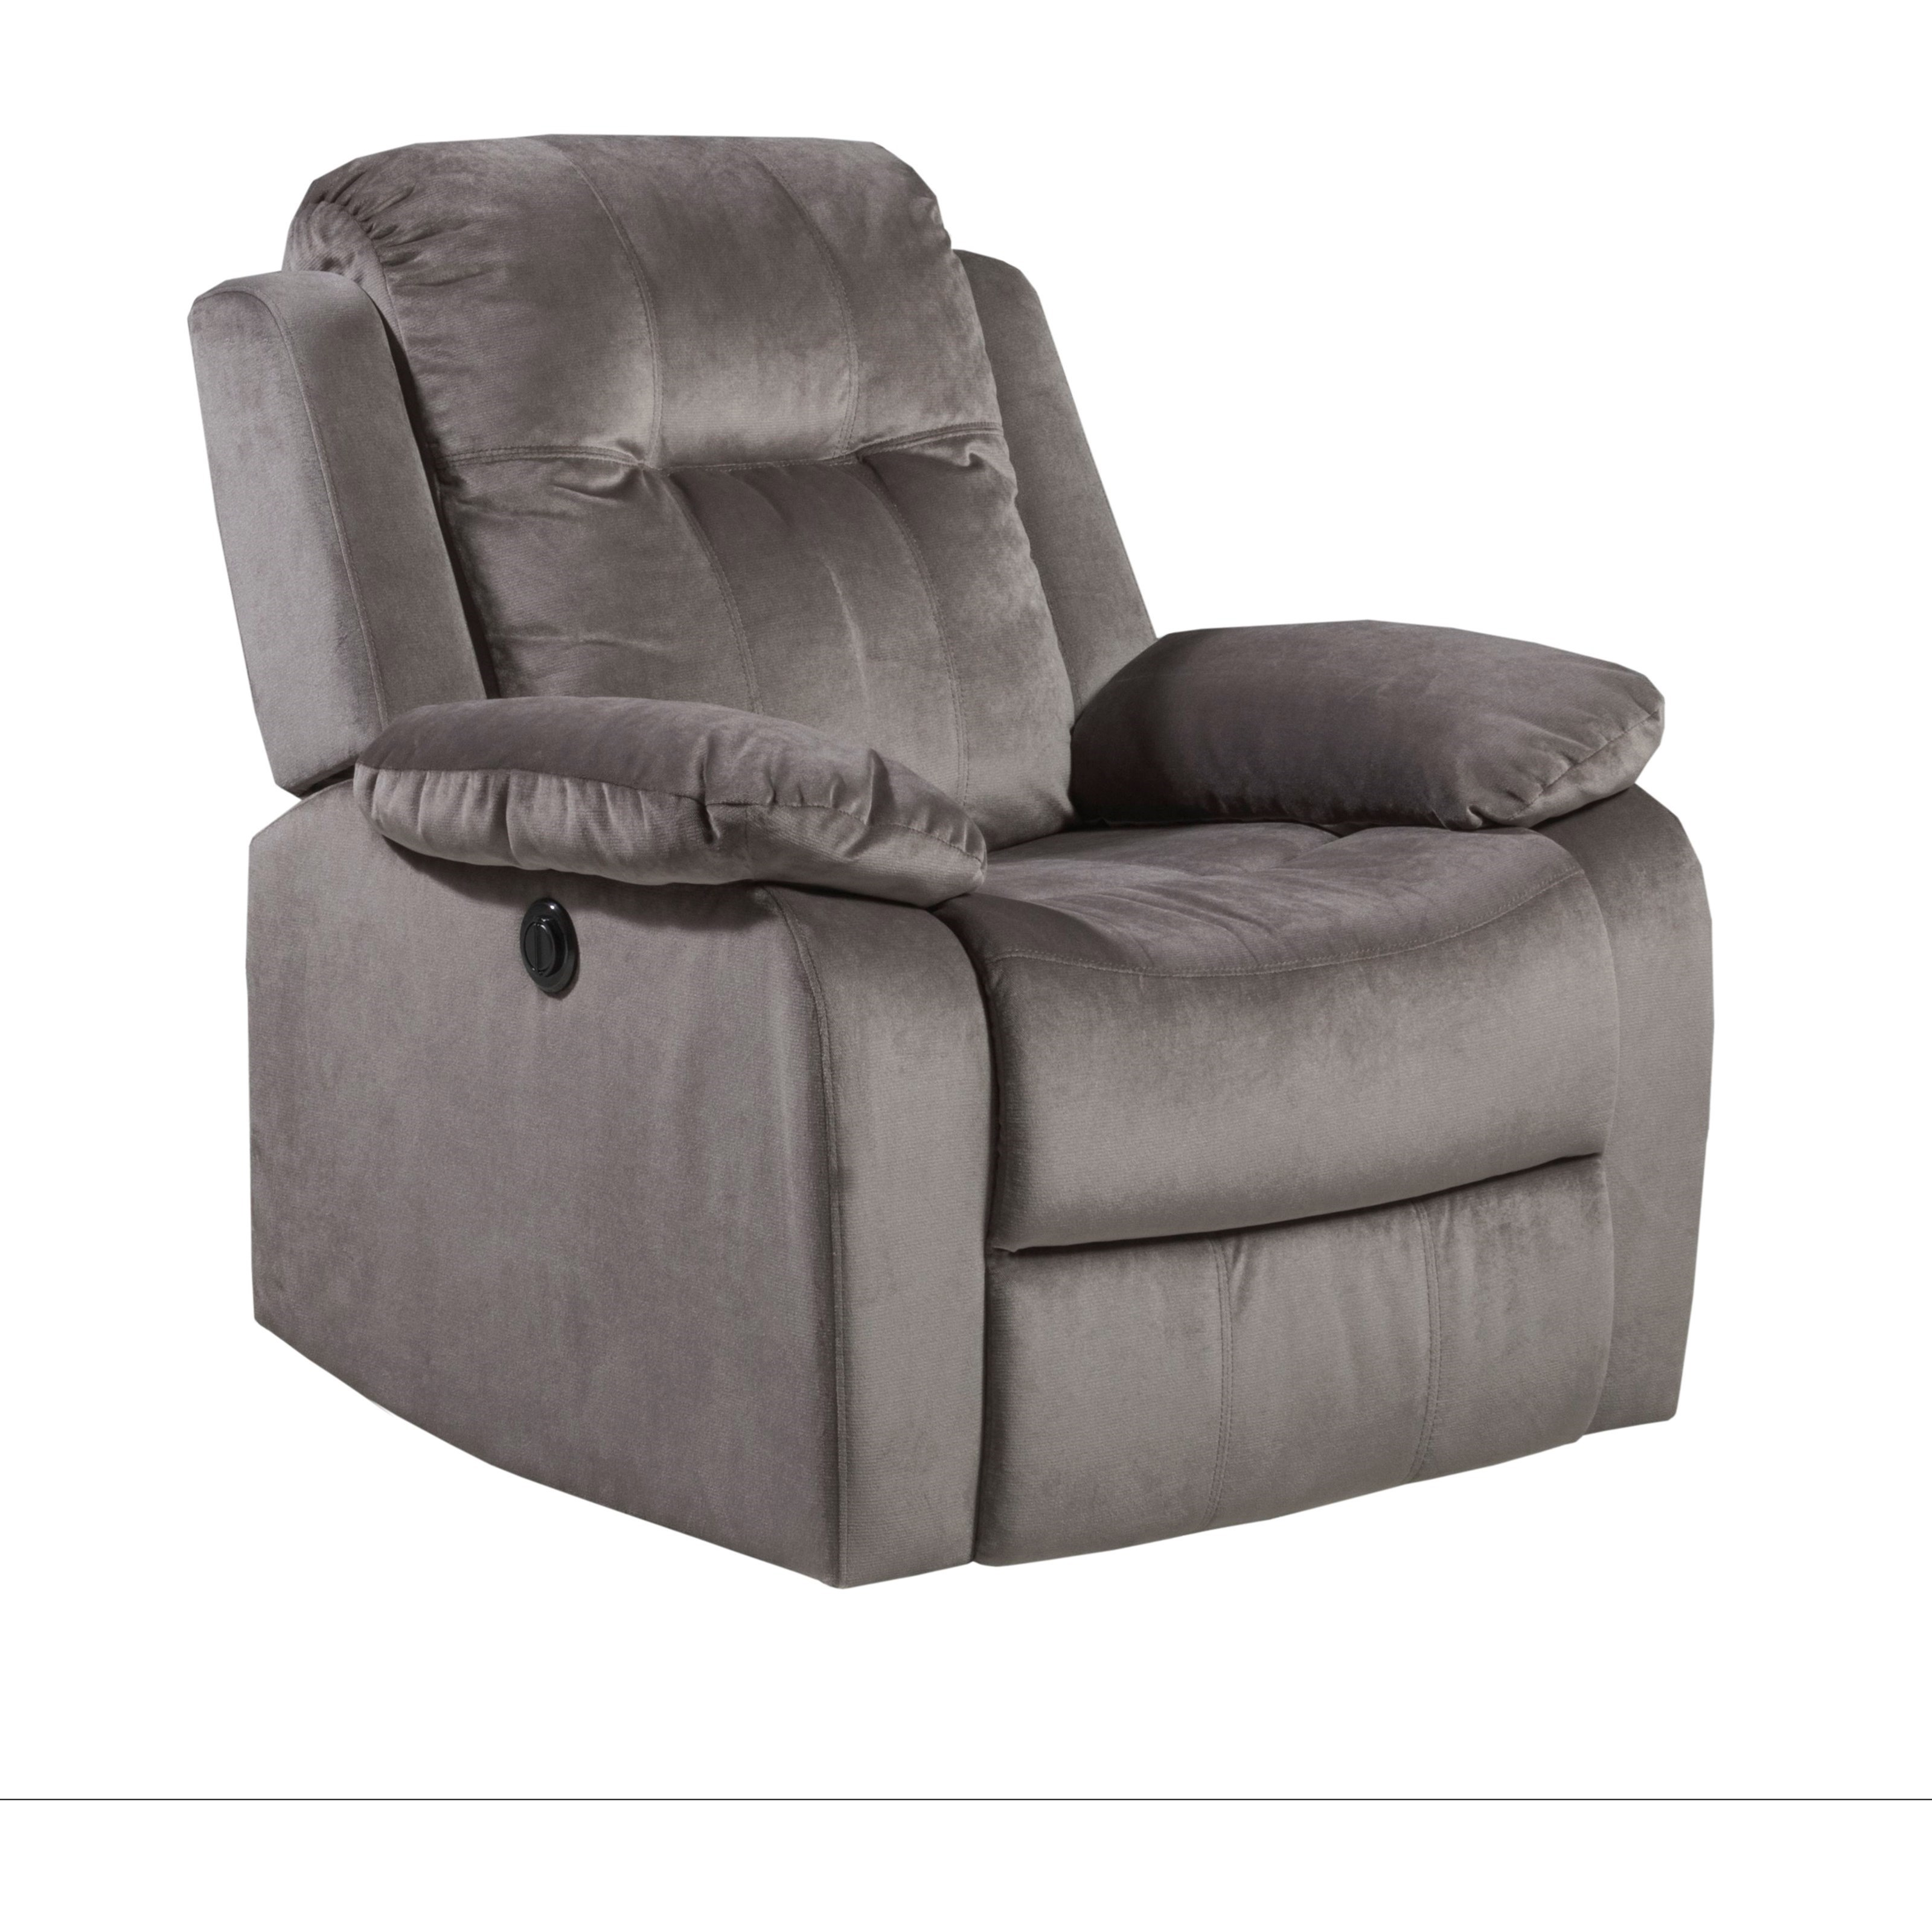 1294W Power Recliner by Lifestyle at Becker Furniture